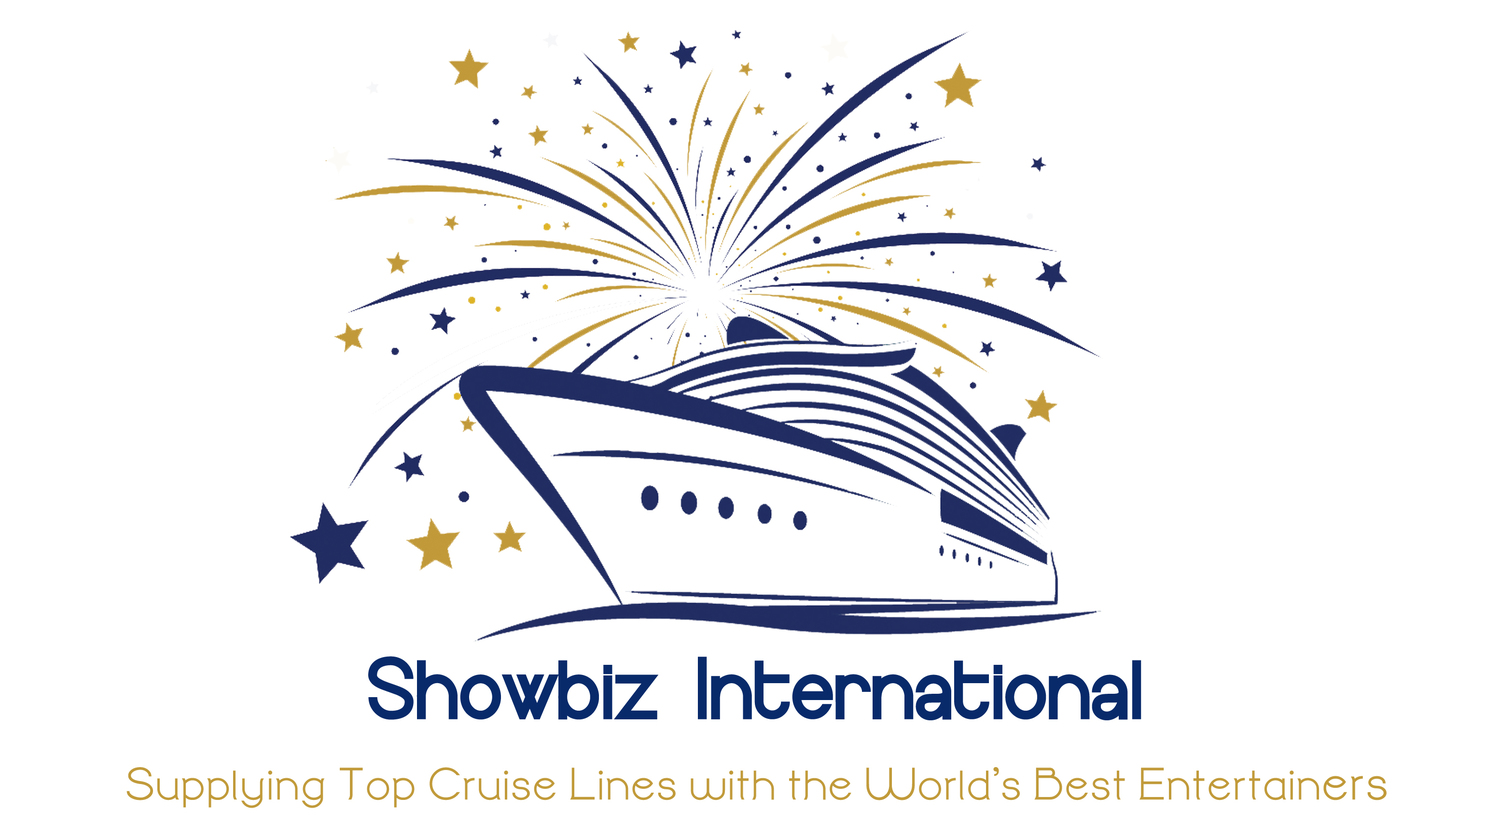 Showbiz International